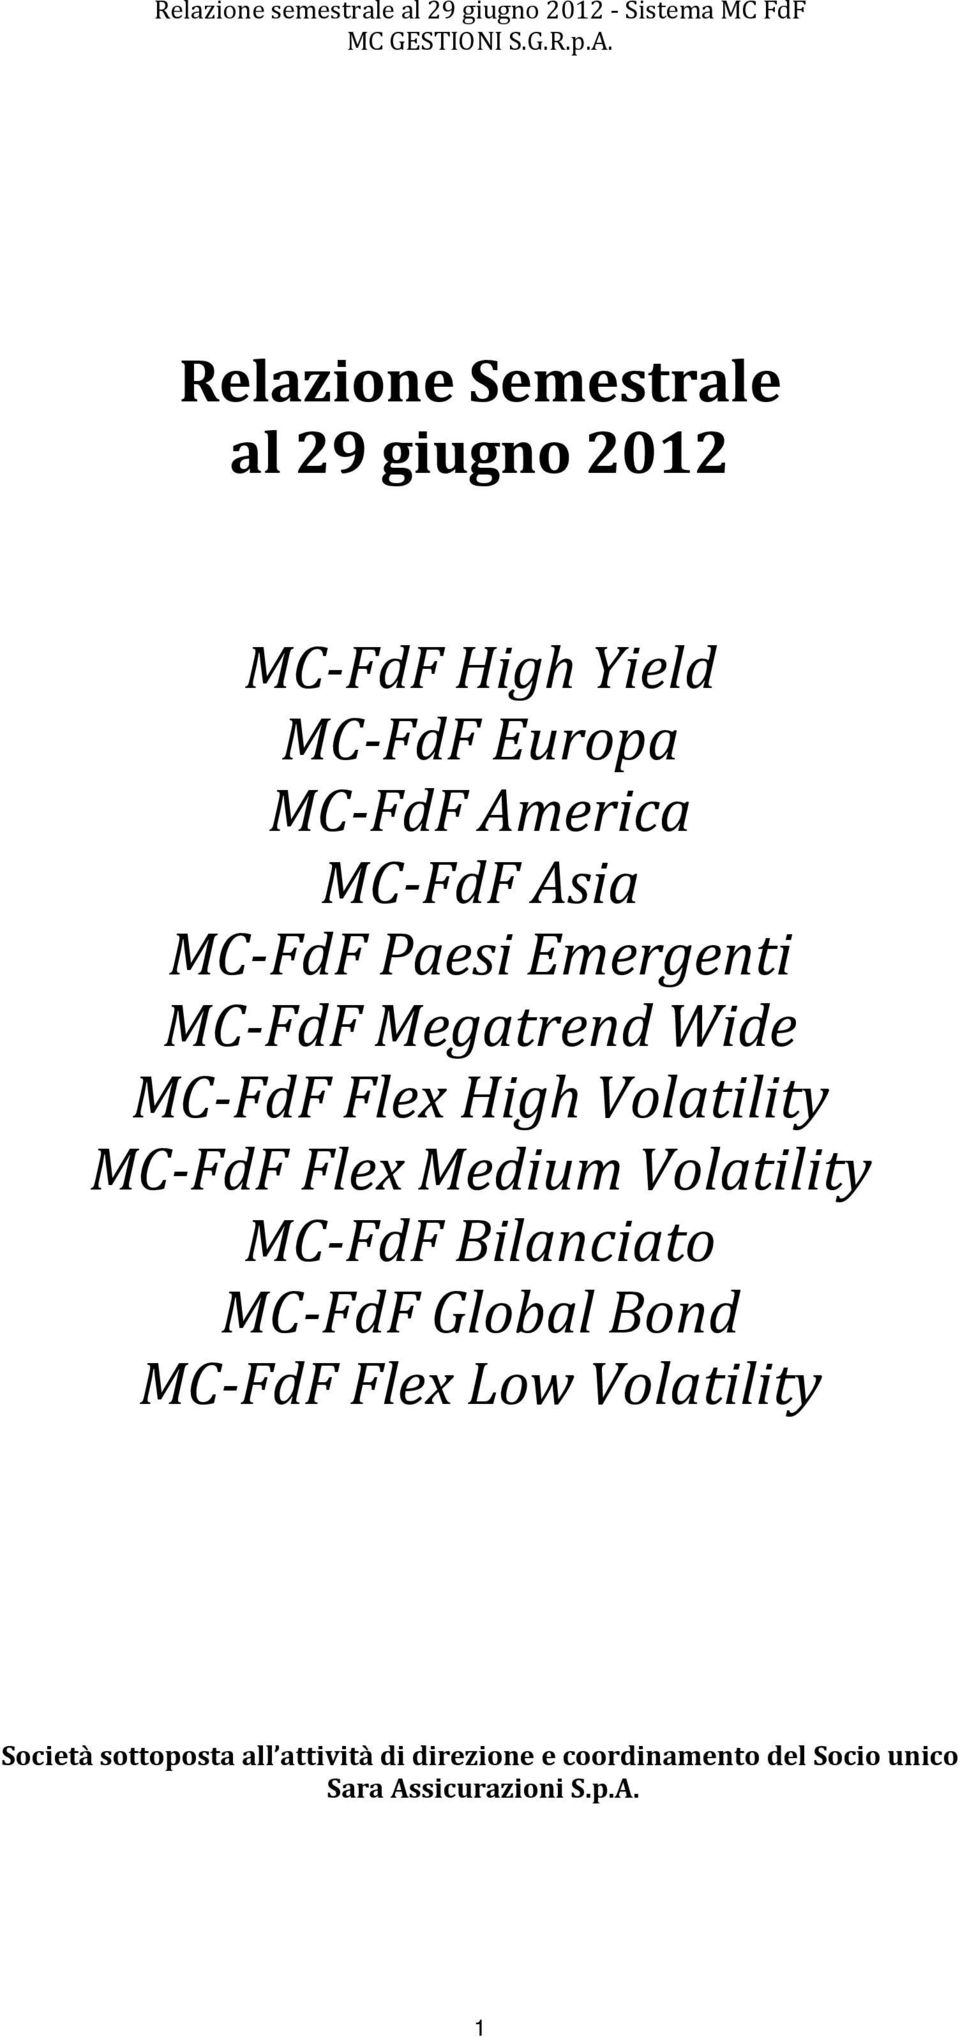 Medium Volatility MC FdF Bilanciato MC FdF Global Bond MC FdF Flex Low Volatility Società